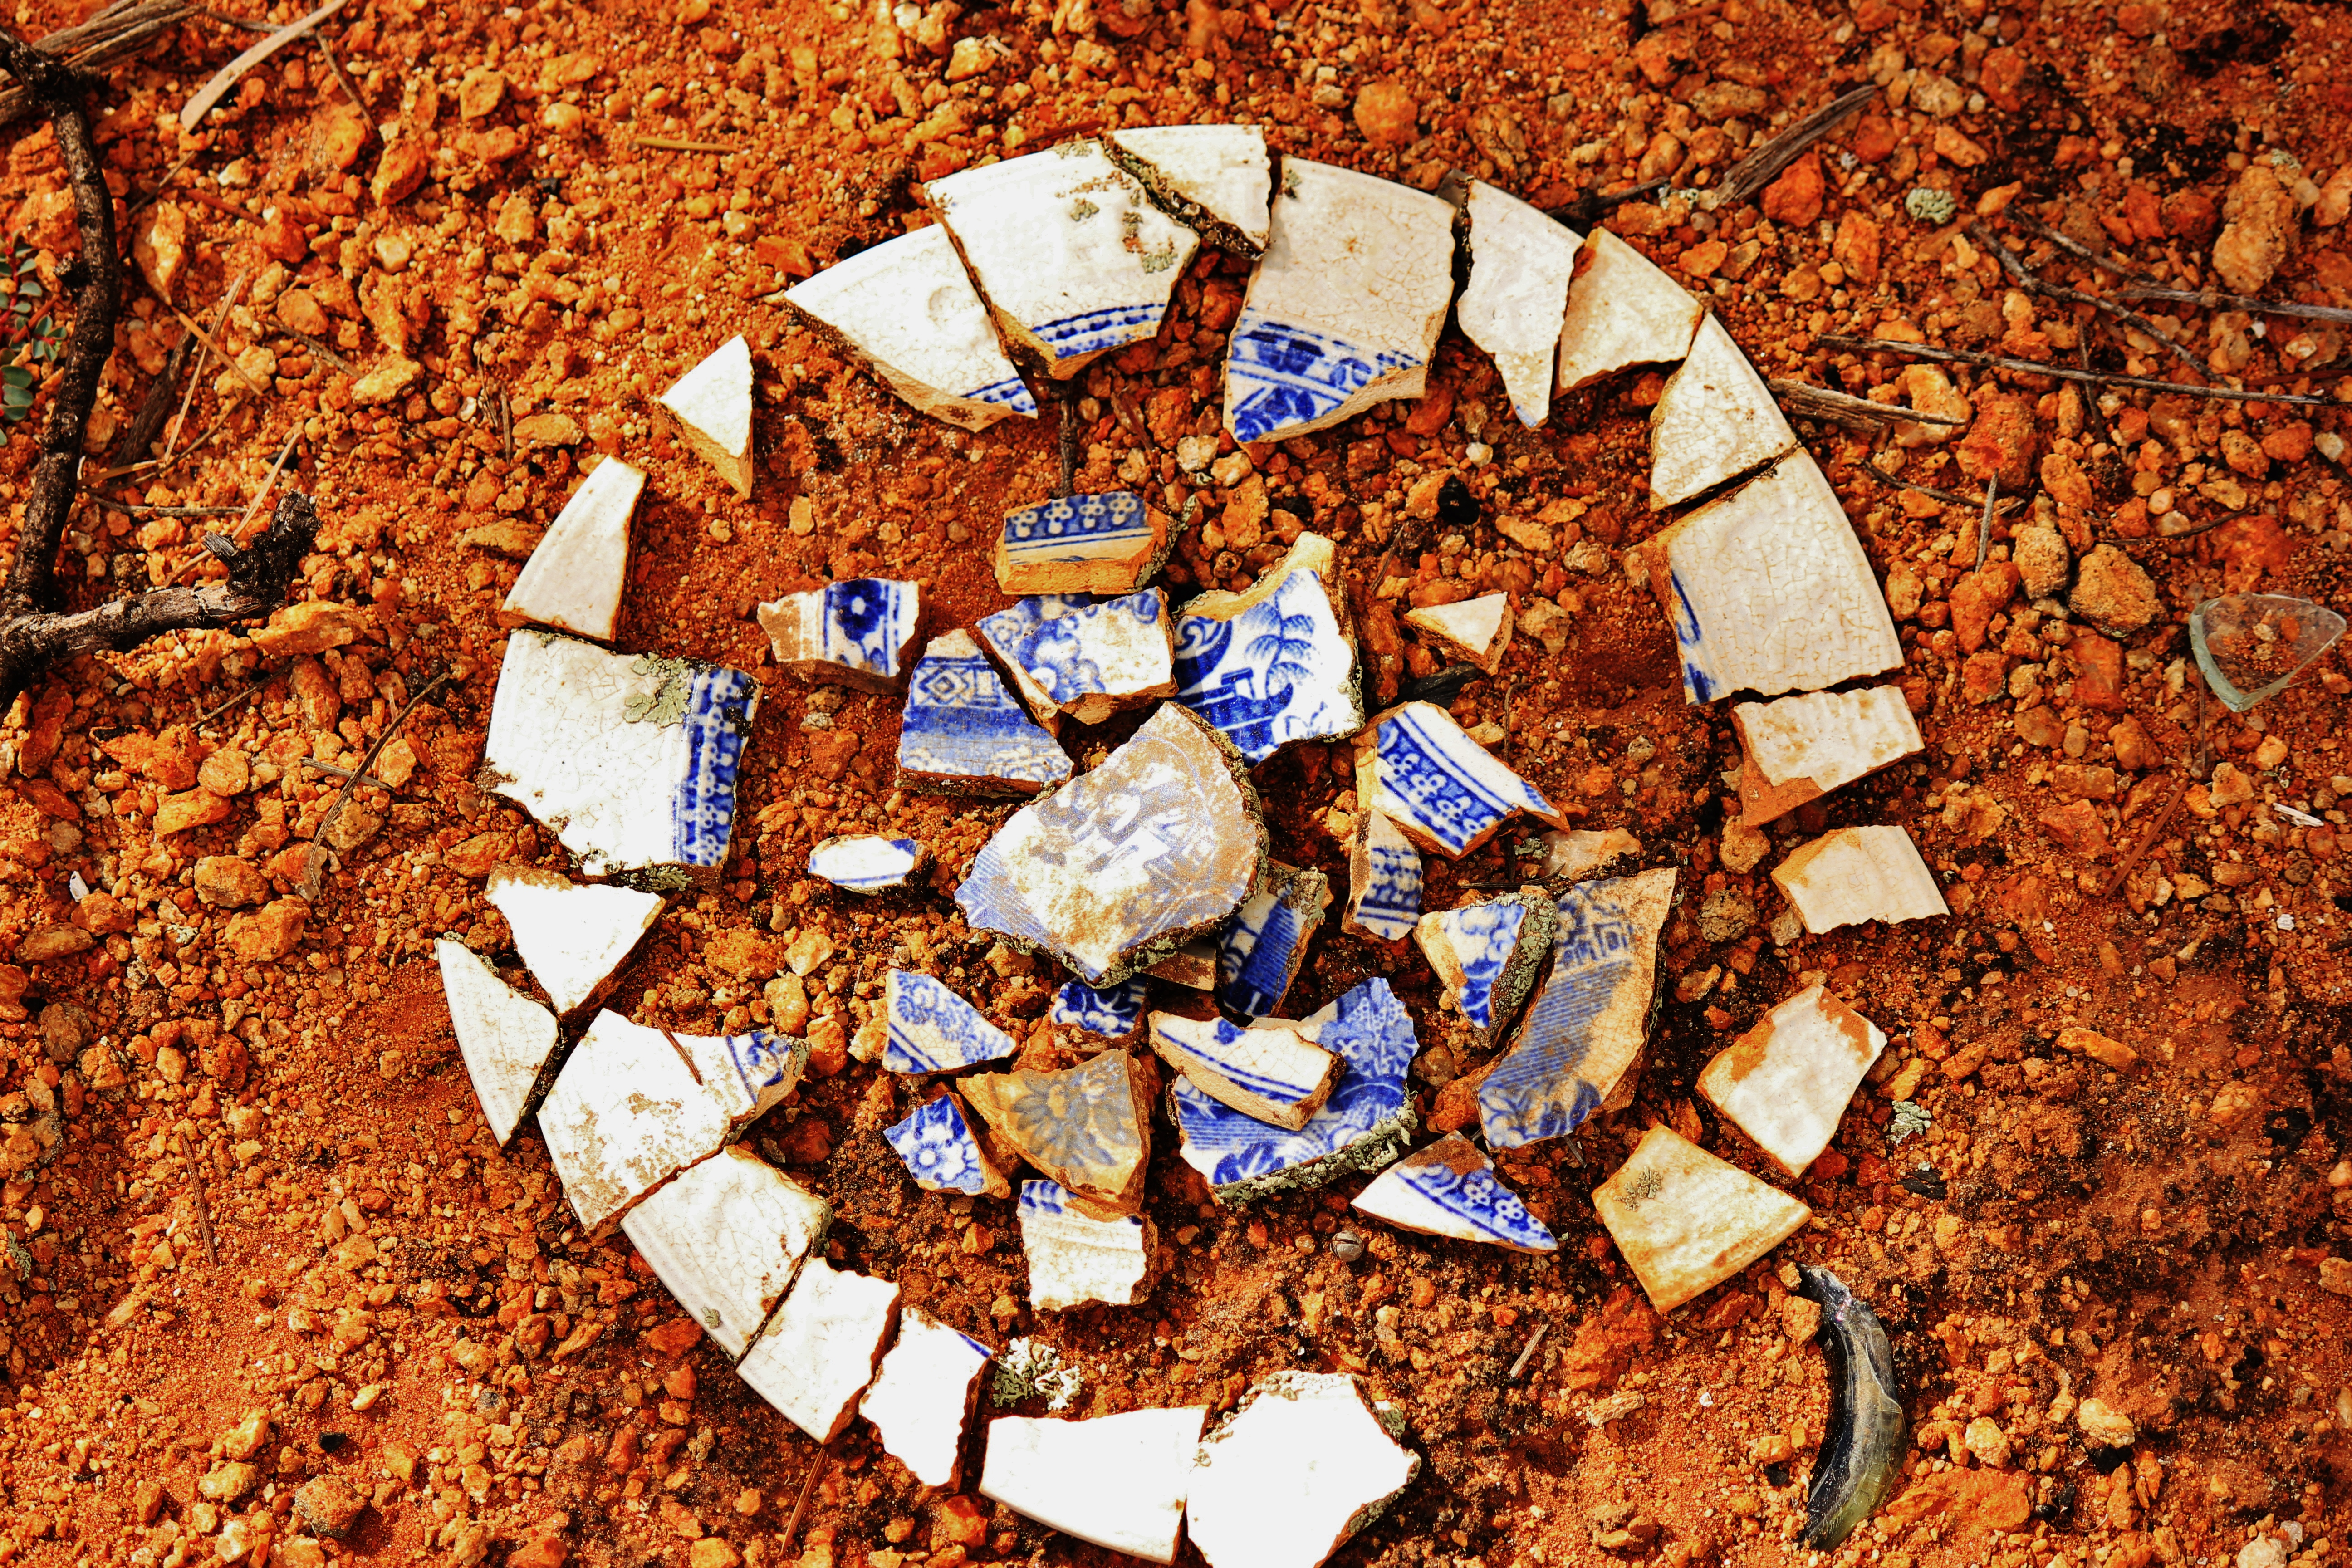 Remains of a discarded childs plate